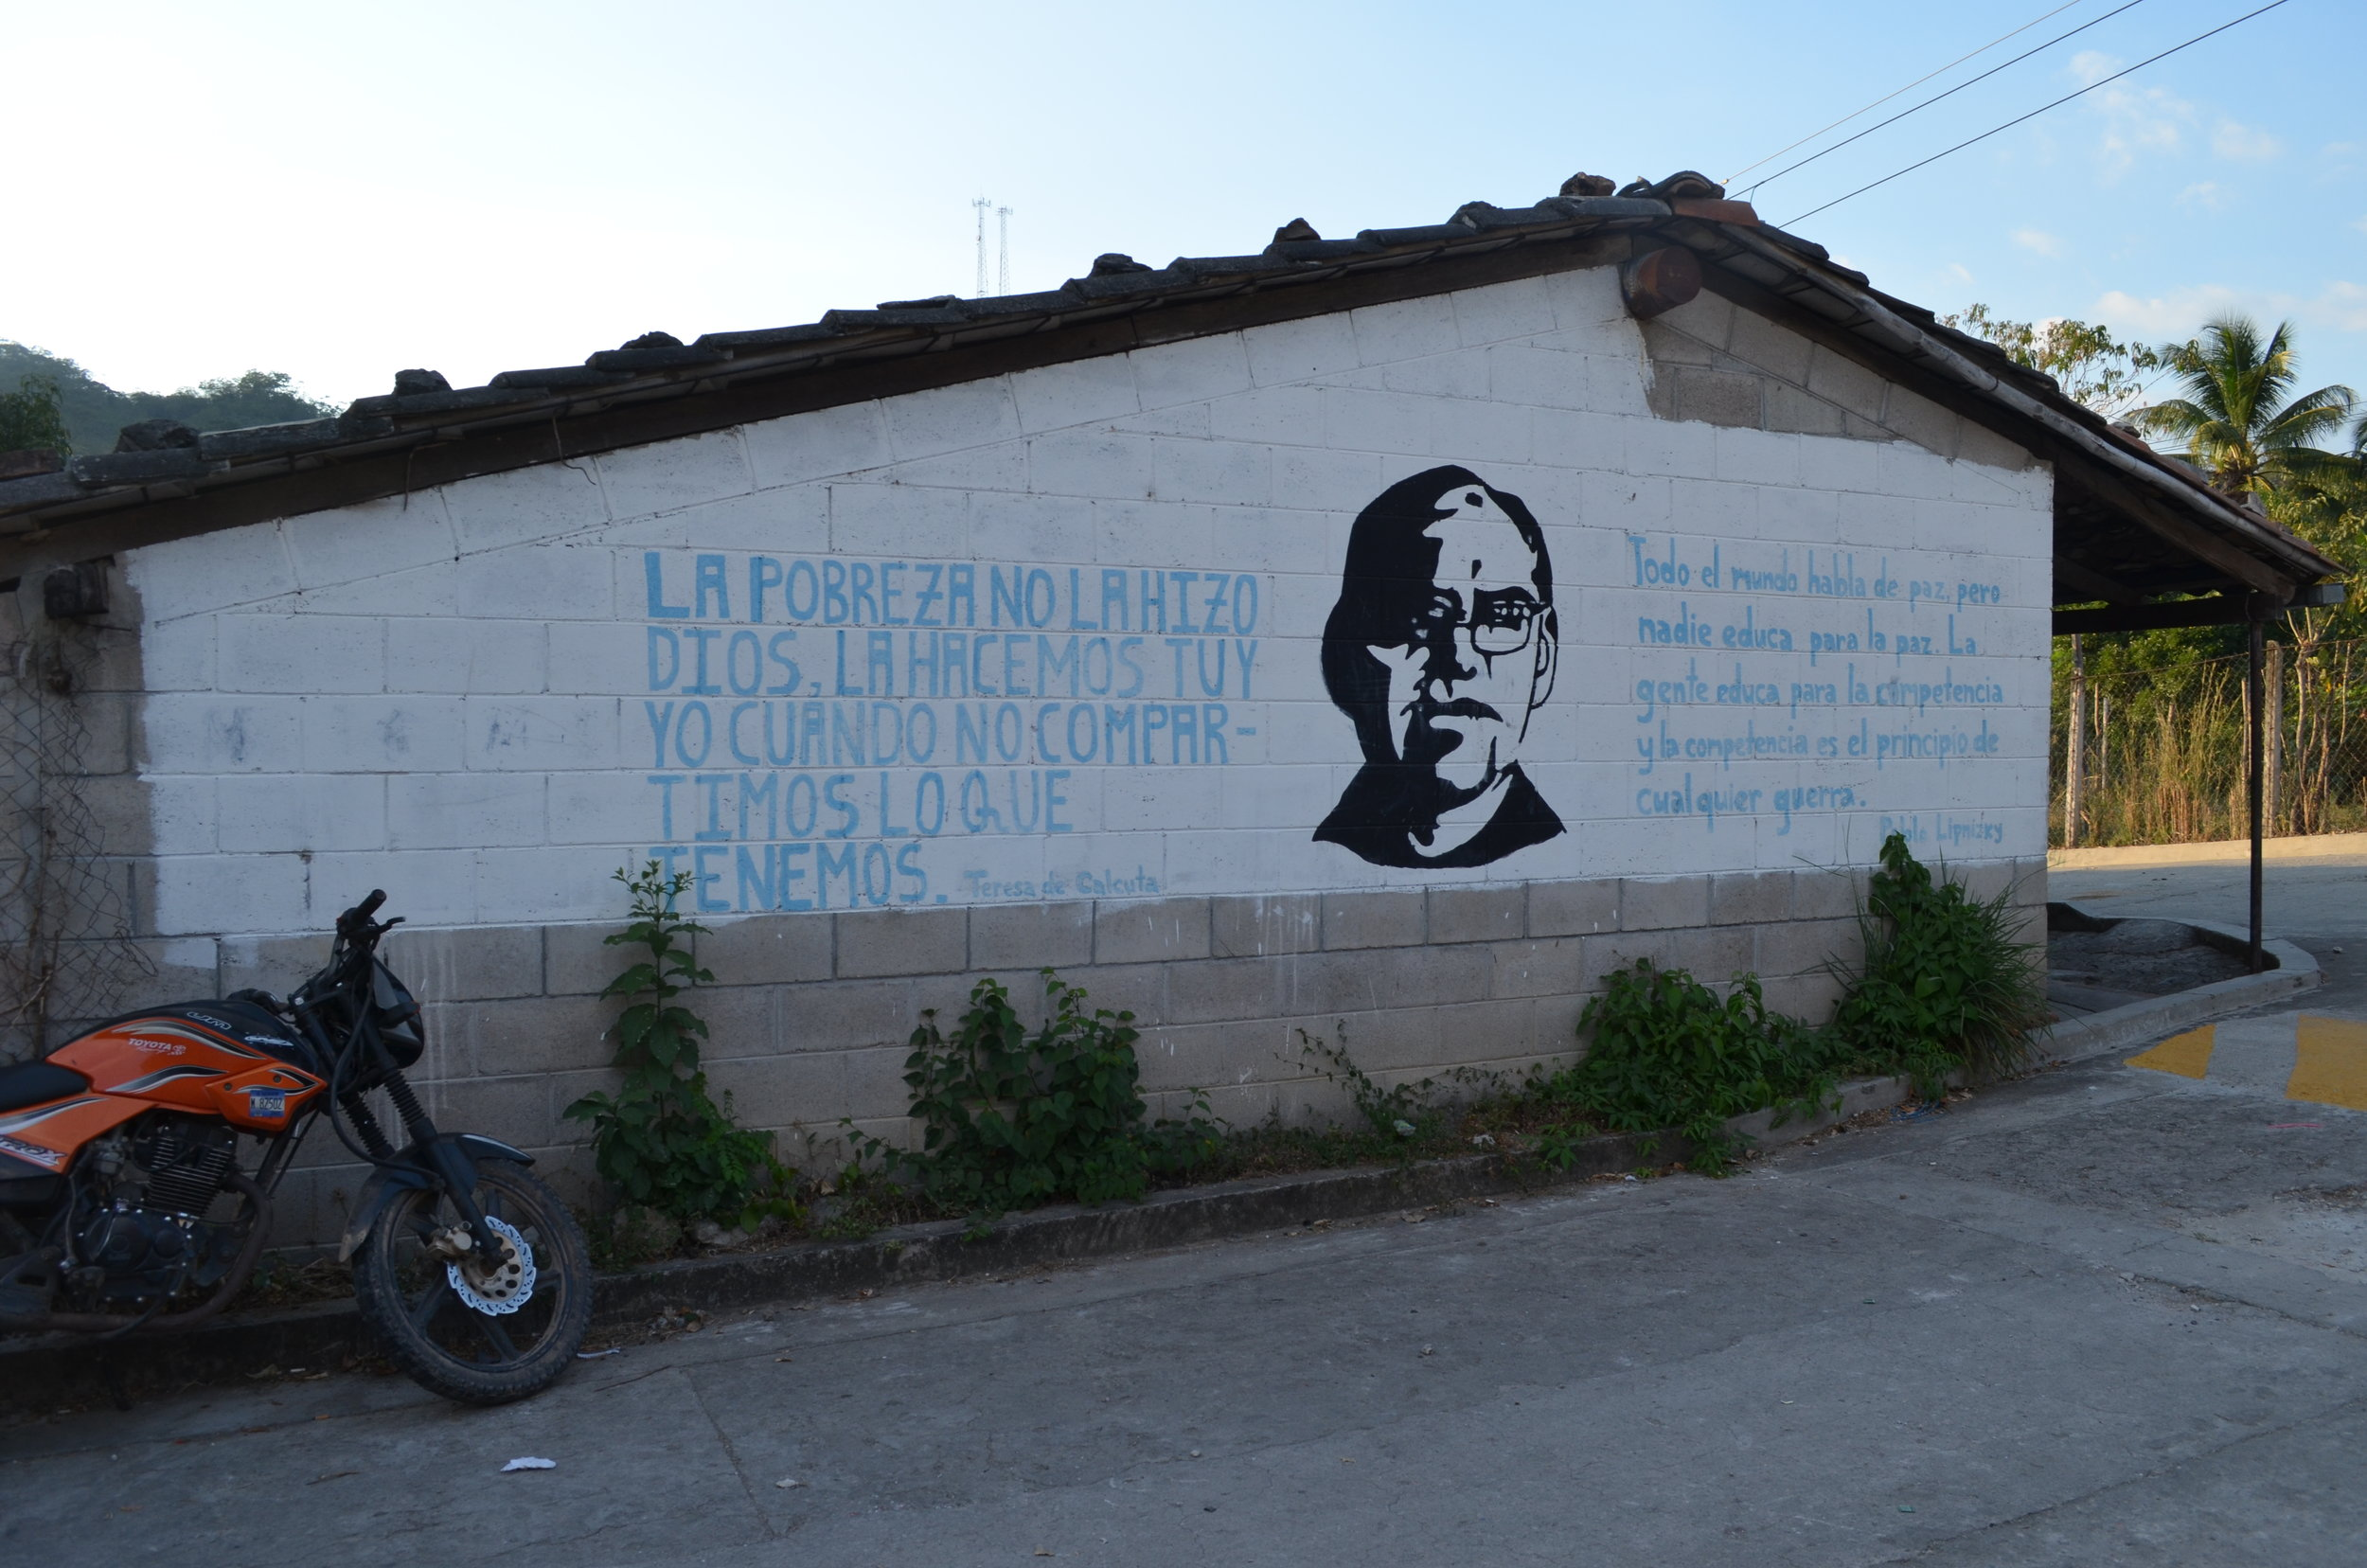 """God did not create poverty; we create it when we do not share what we have""- A mural in Arcatao. Photo by Dalton Anthony."